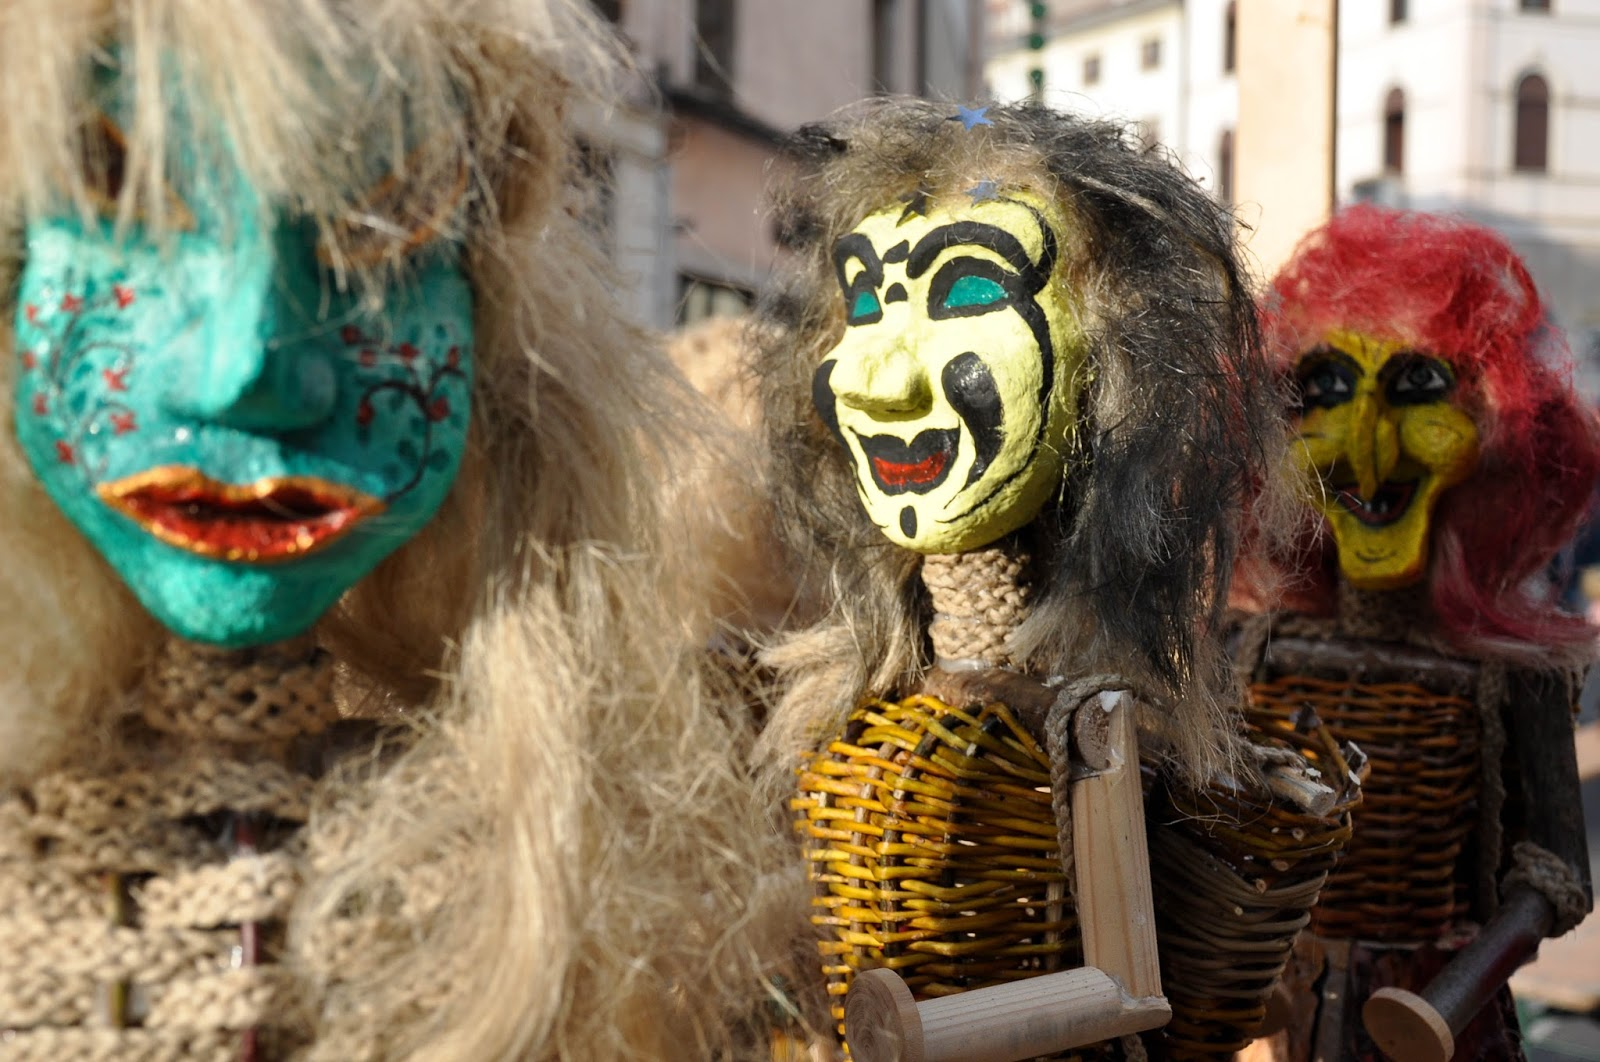 Three witches called 'strie' typical of the Northern Italian region of Veneto